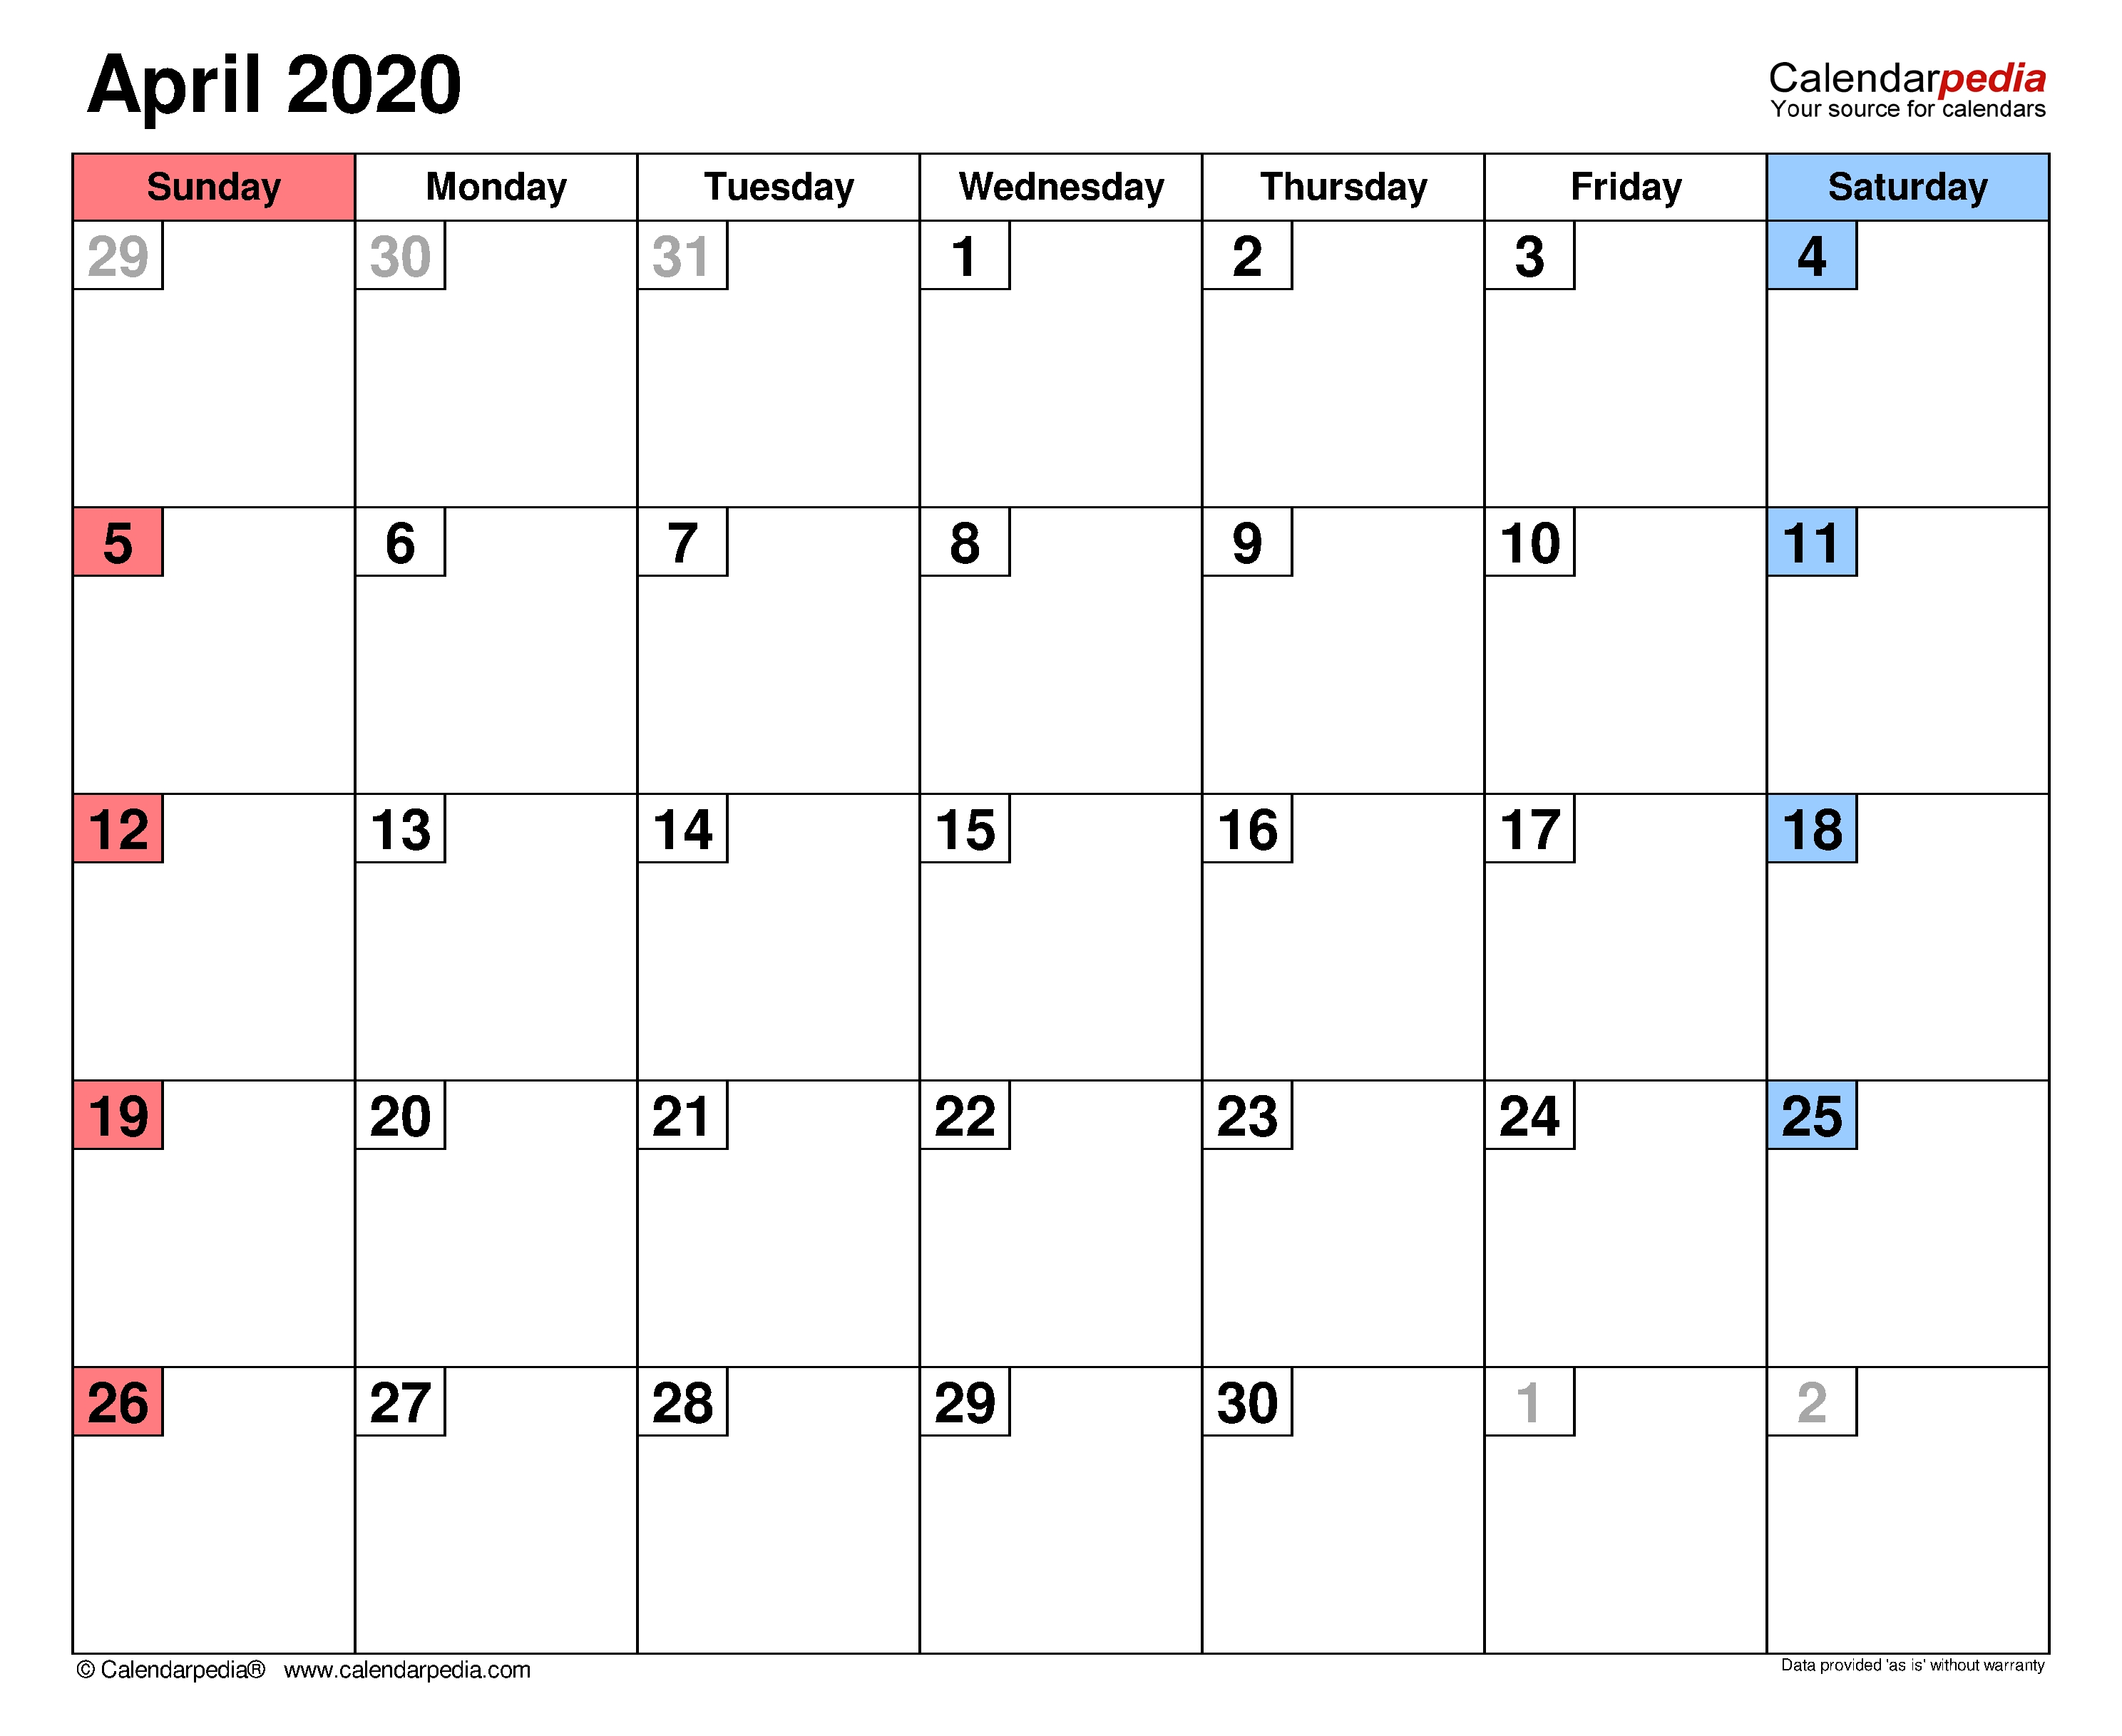 April 2020 - Calendar Templates For Word, Excel And Pdf